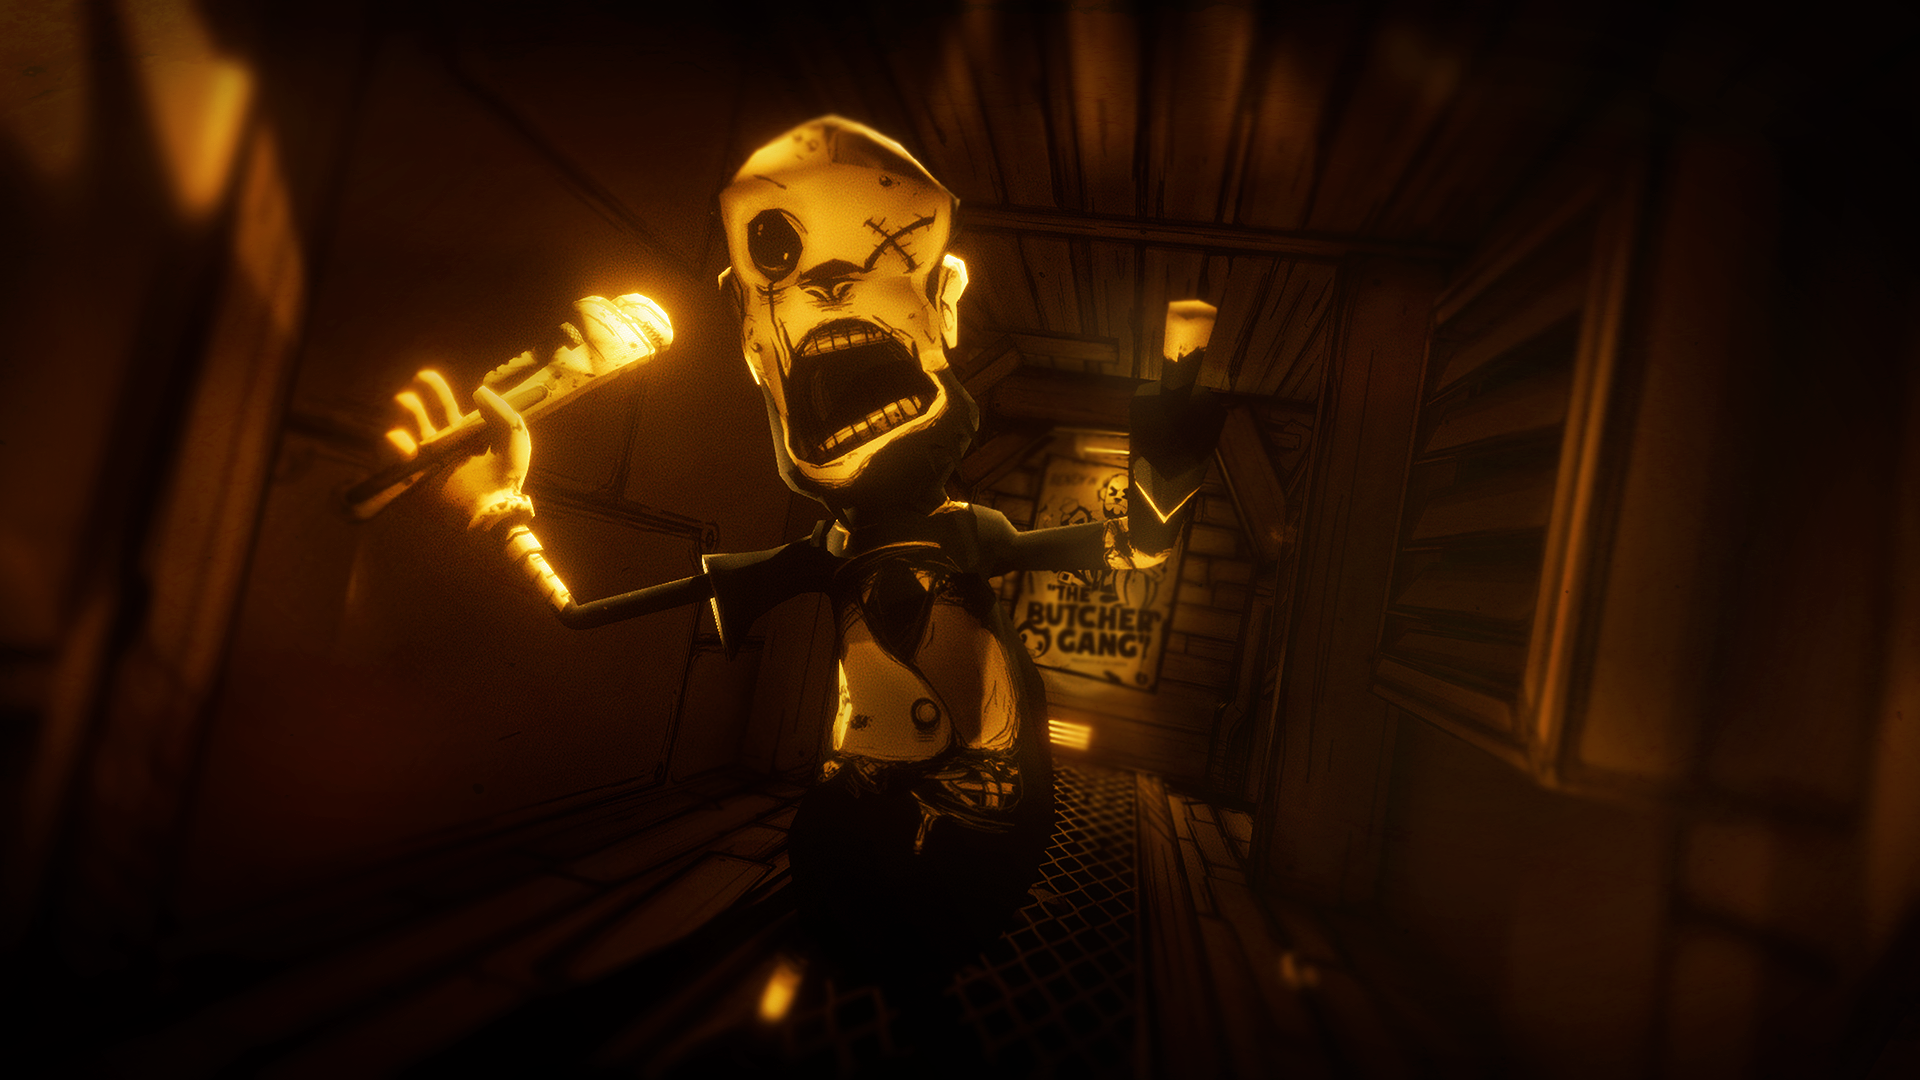 bendy and the ink machine download free ipad